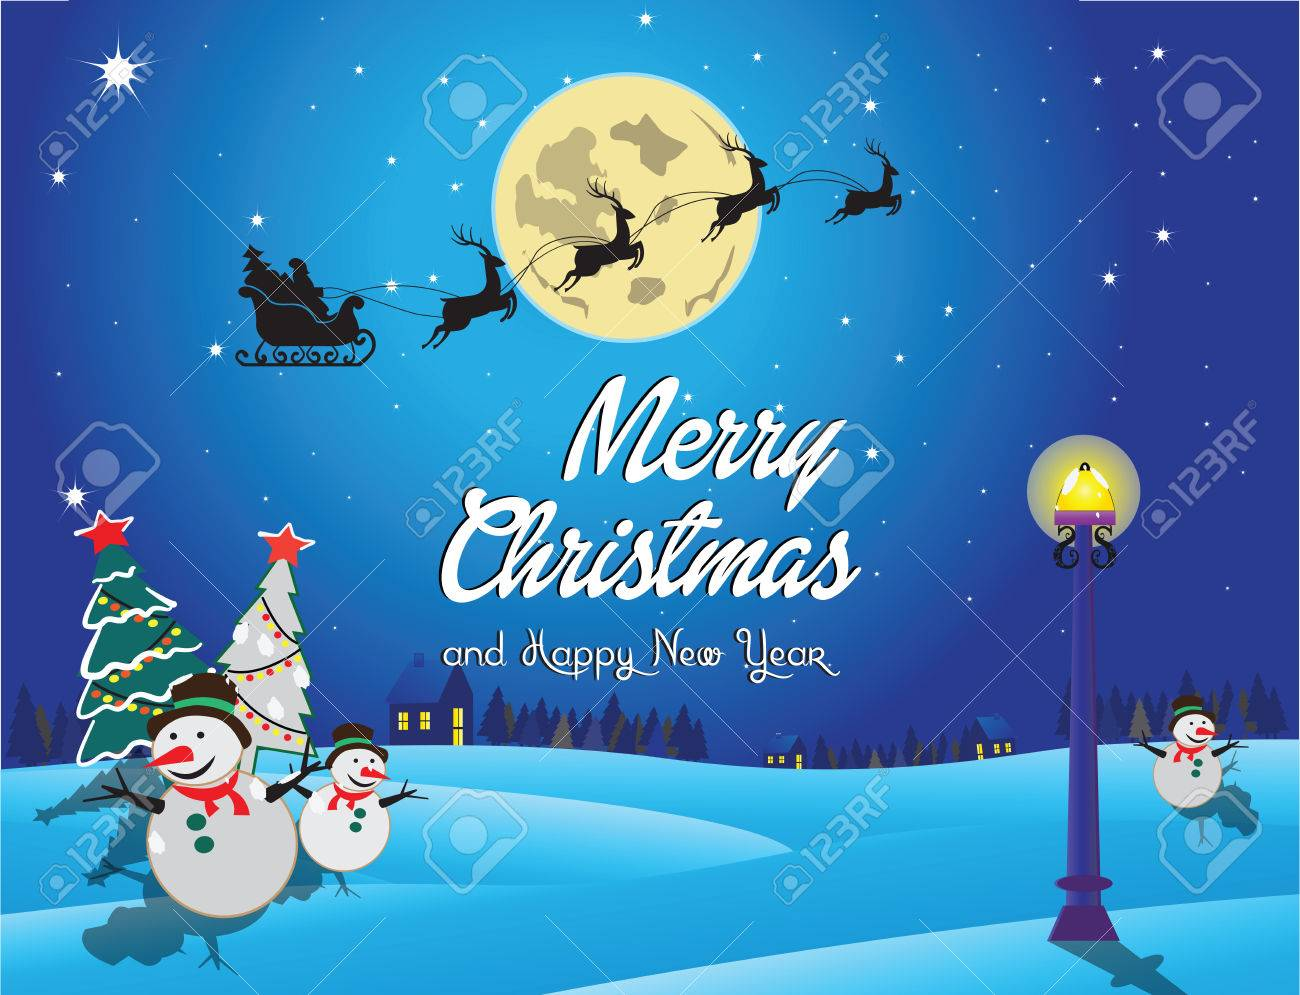 merry christmas and happy new year background suitable for printing postcard poster